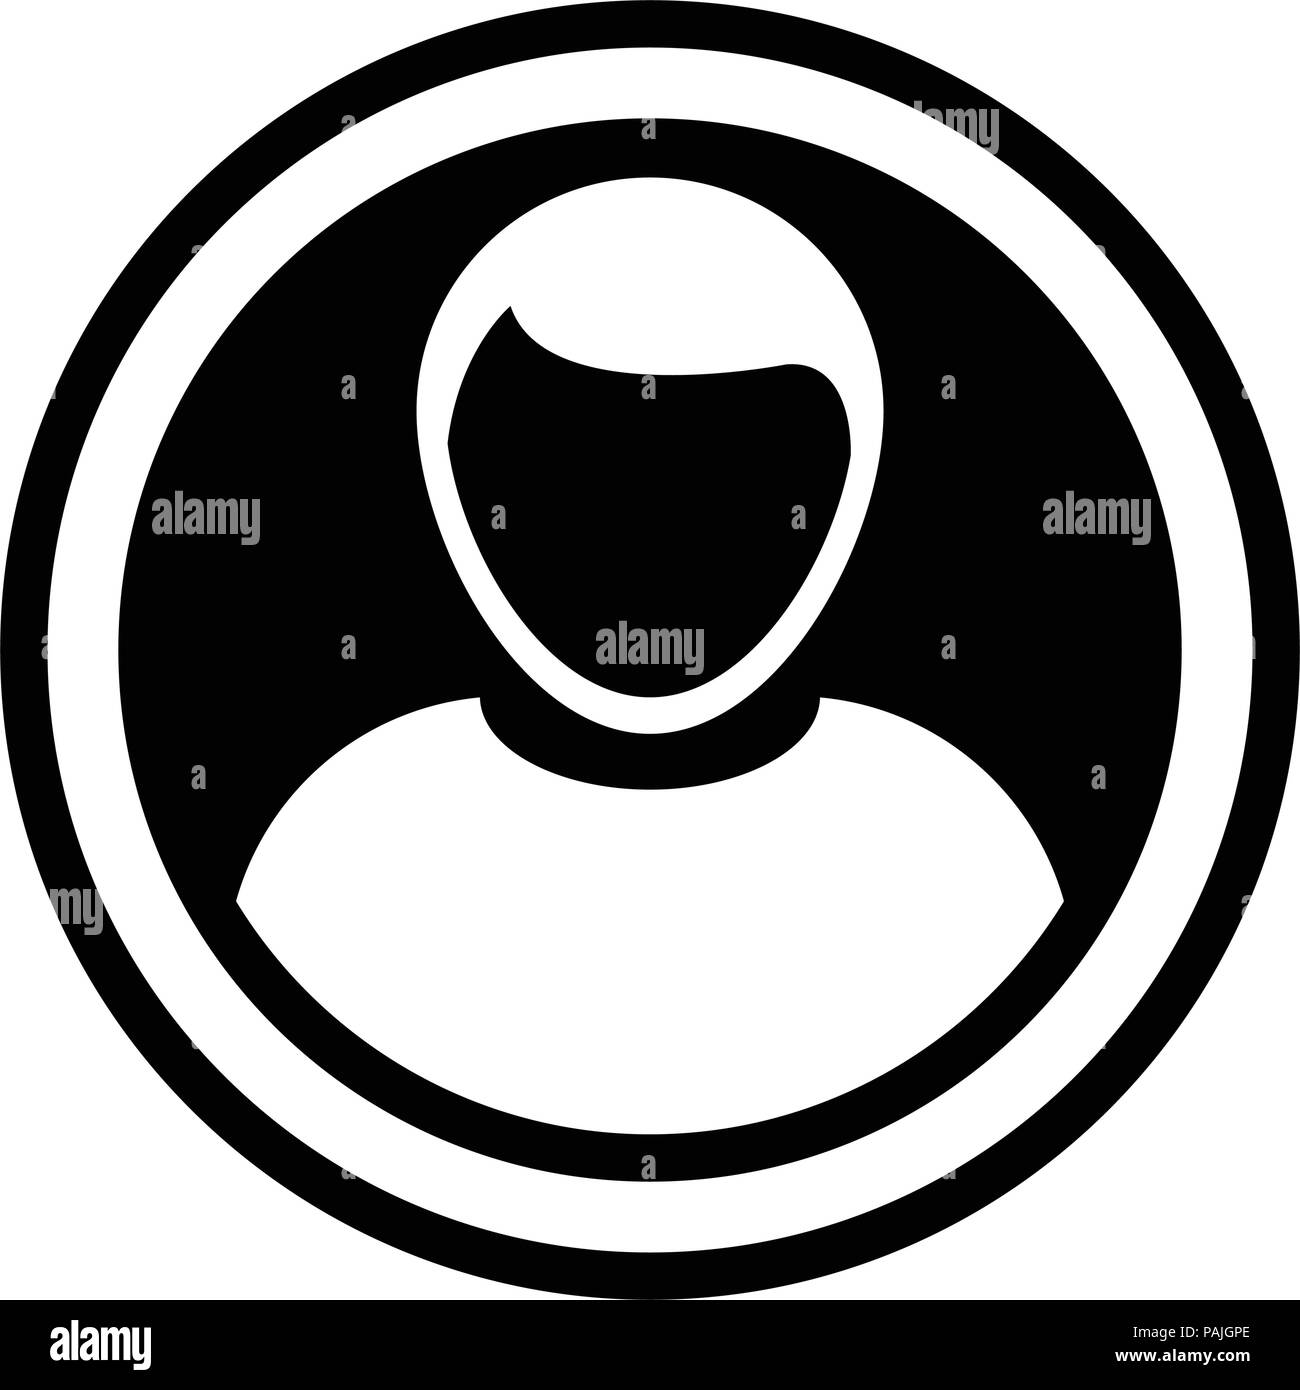 Avatar icon vector male person symbol circle user profile avatar sign in flat color glyph pictogram illustration - Stock Image